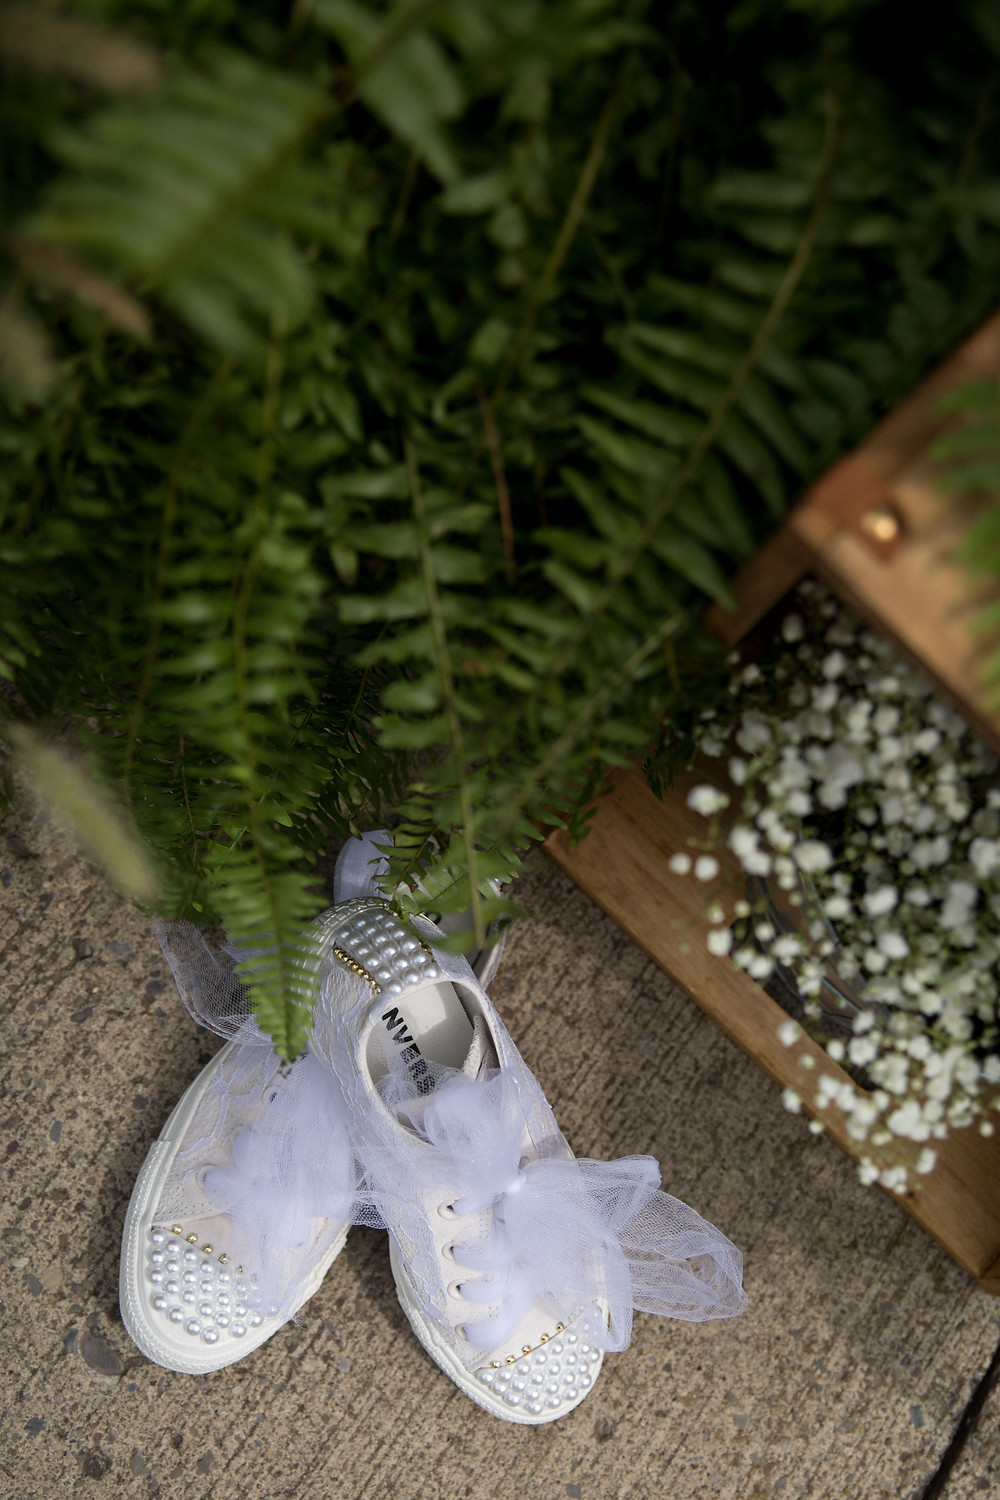 converse bride shoes and ferns wedding detail